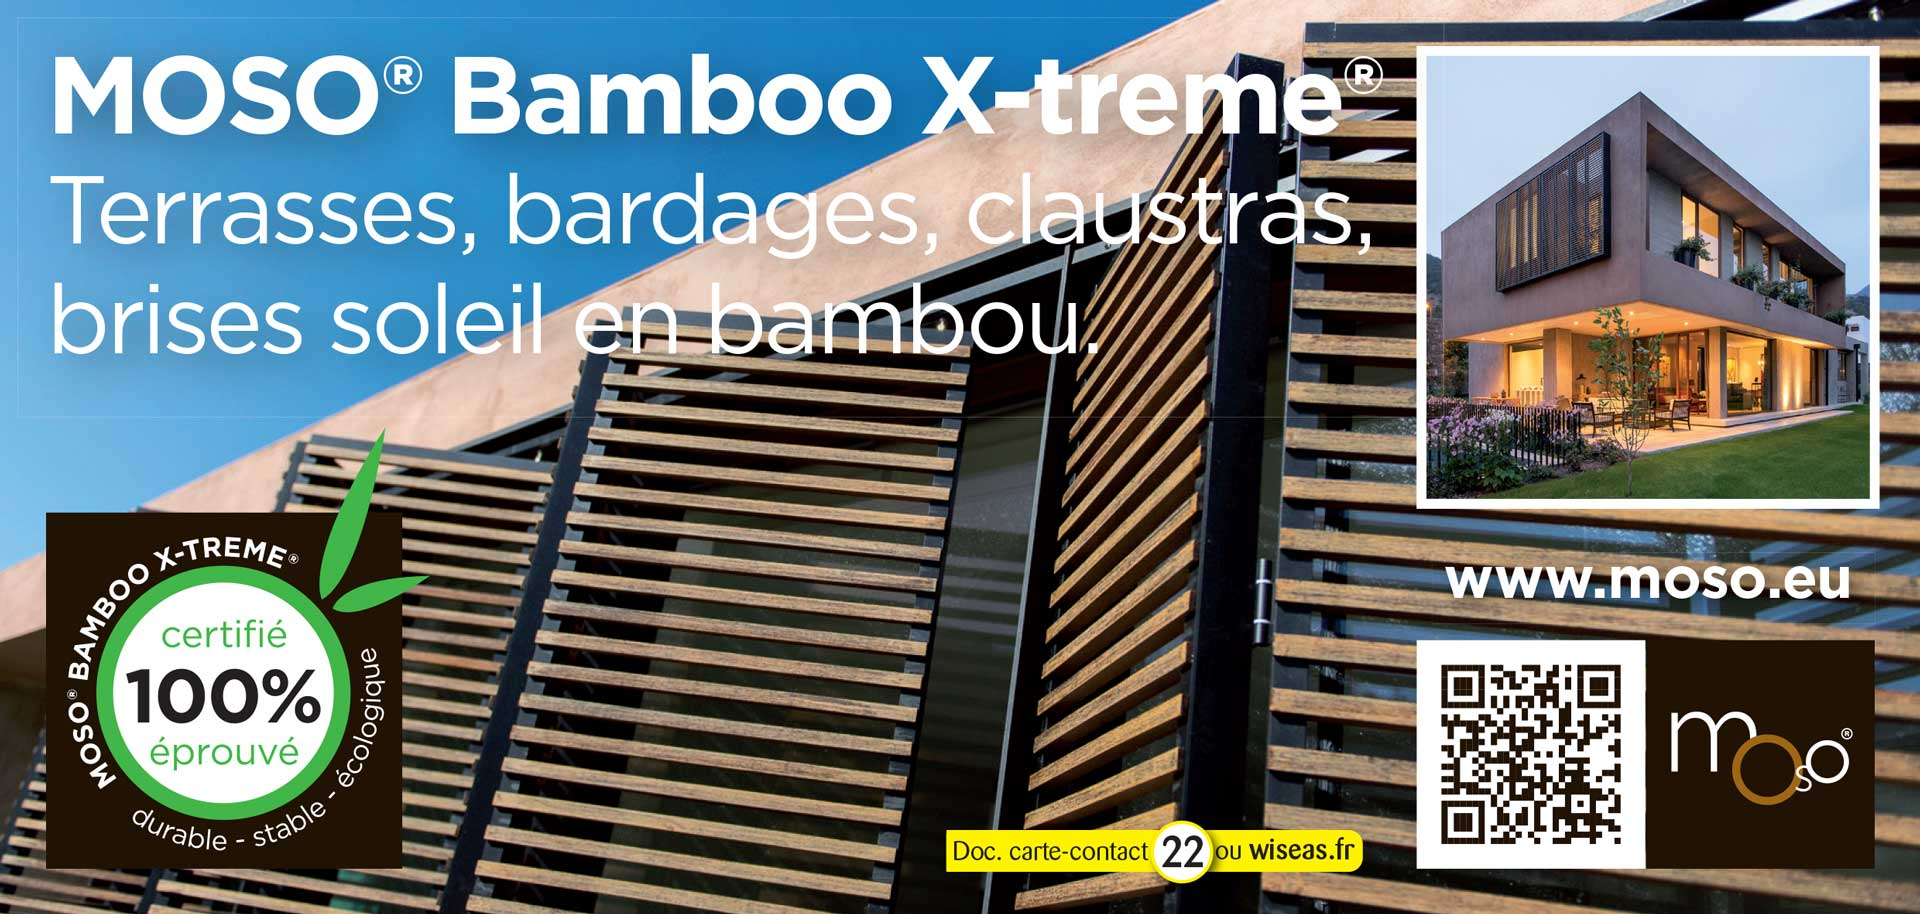 Bamboo X-treme® pour terrasses, bardages, claustras